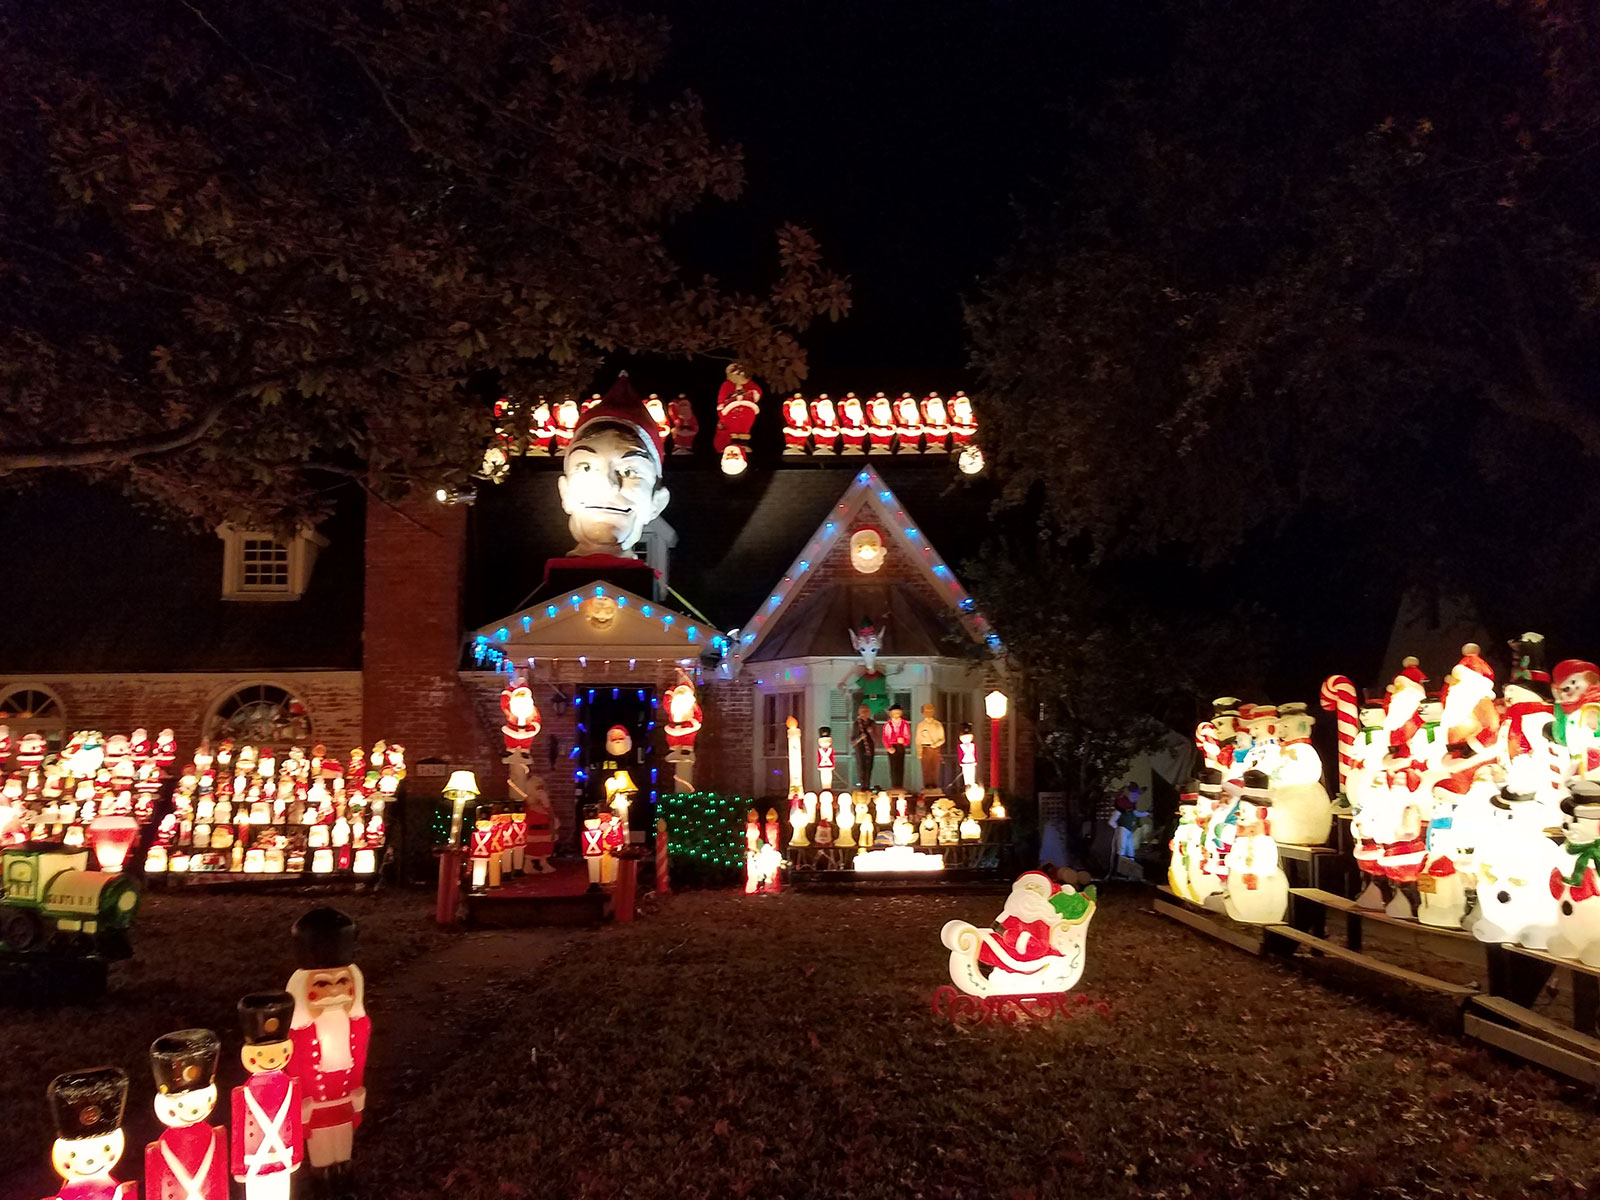 Best Christmas Tree Lights.This Is The Single Best Christmas Light Display In Dallas